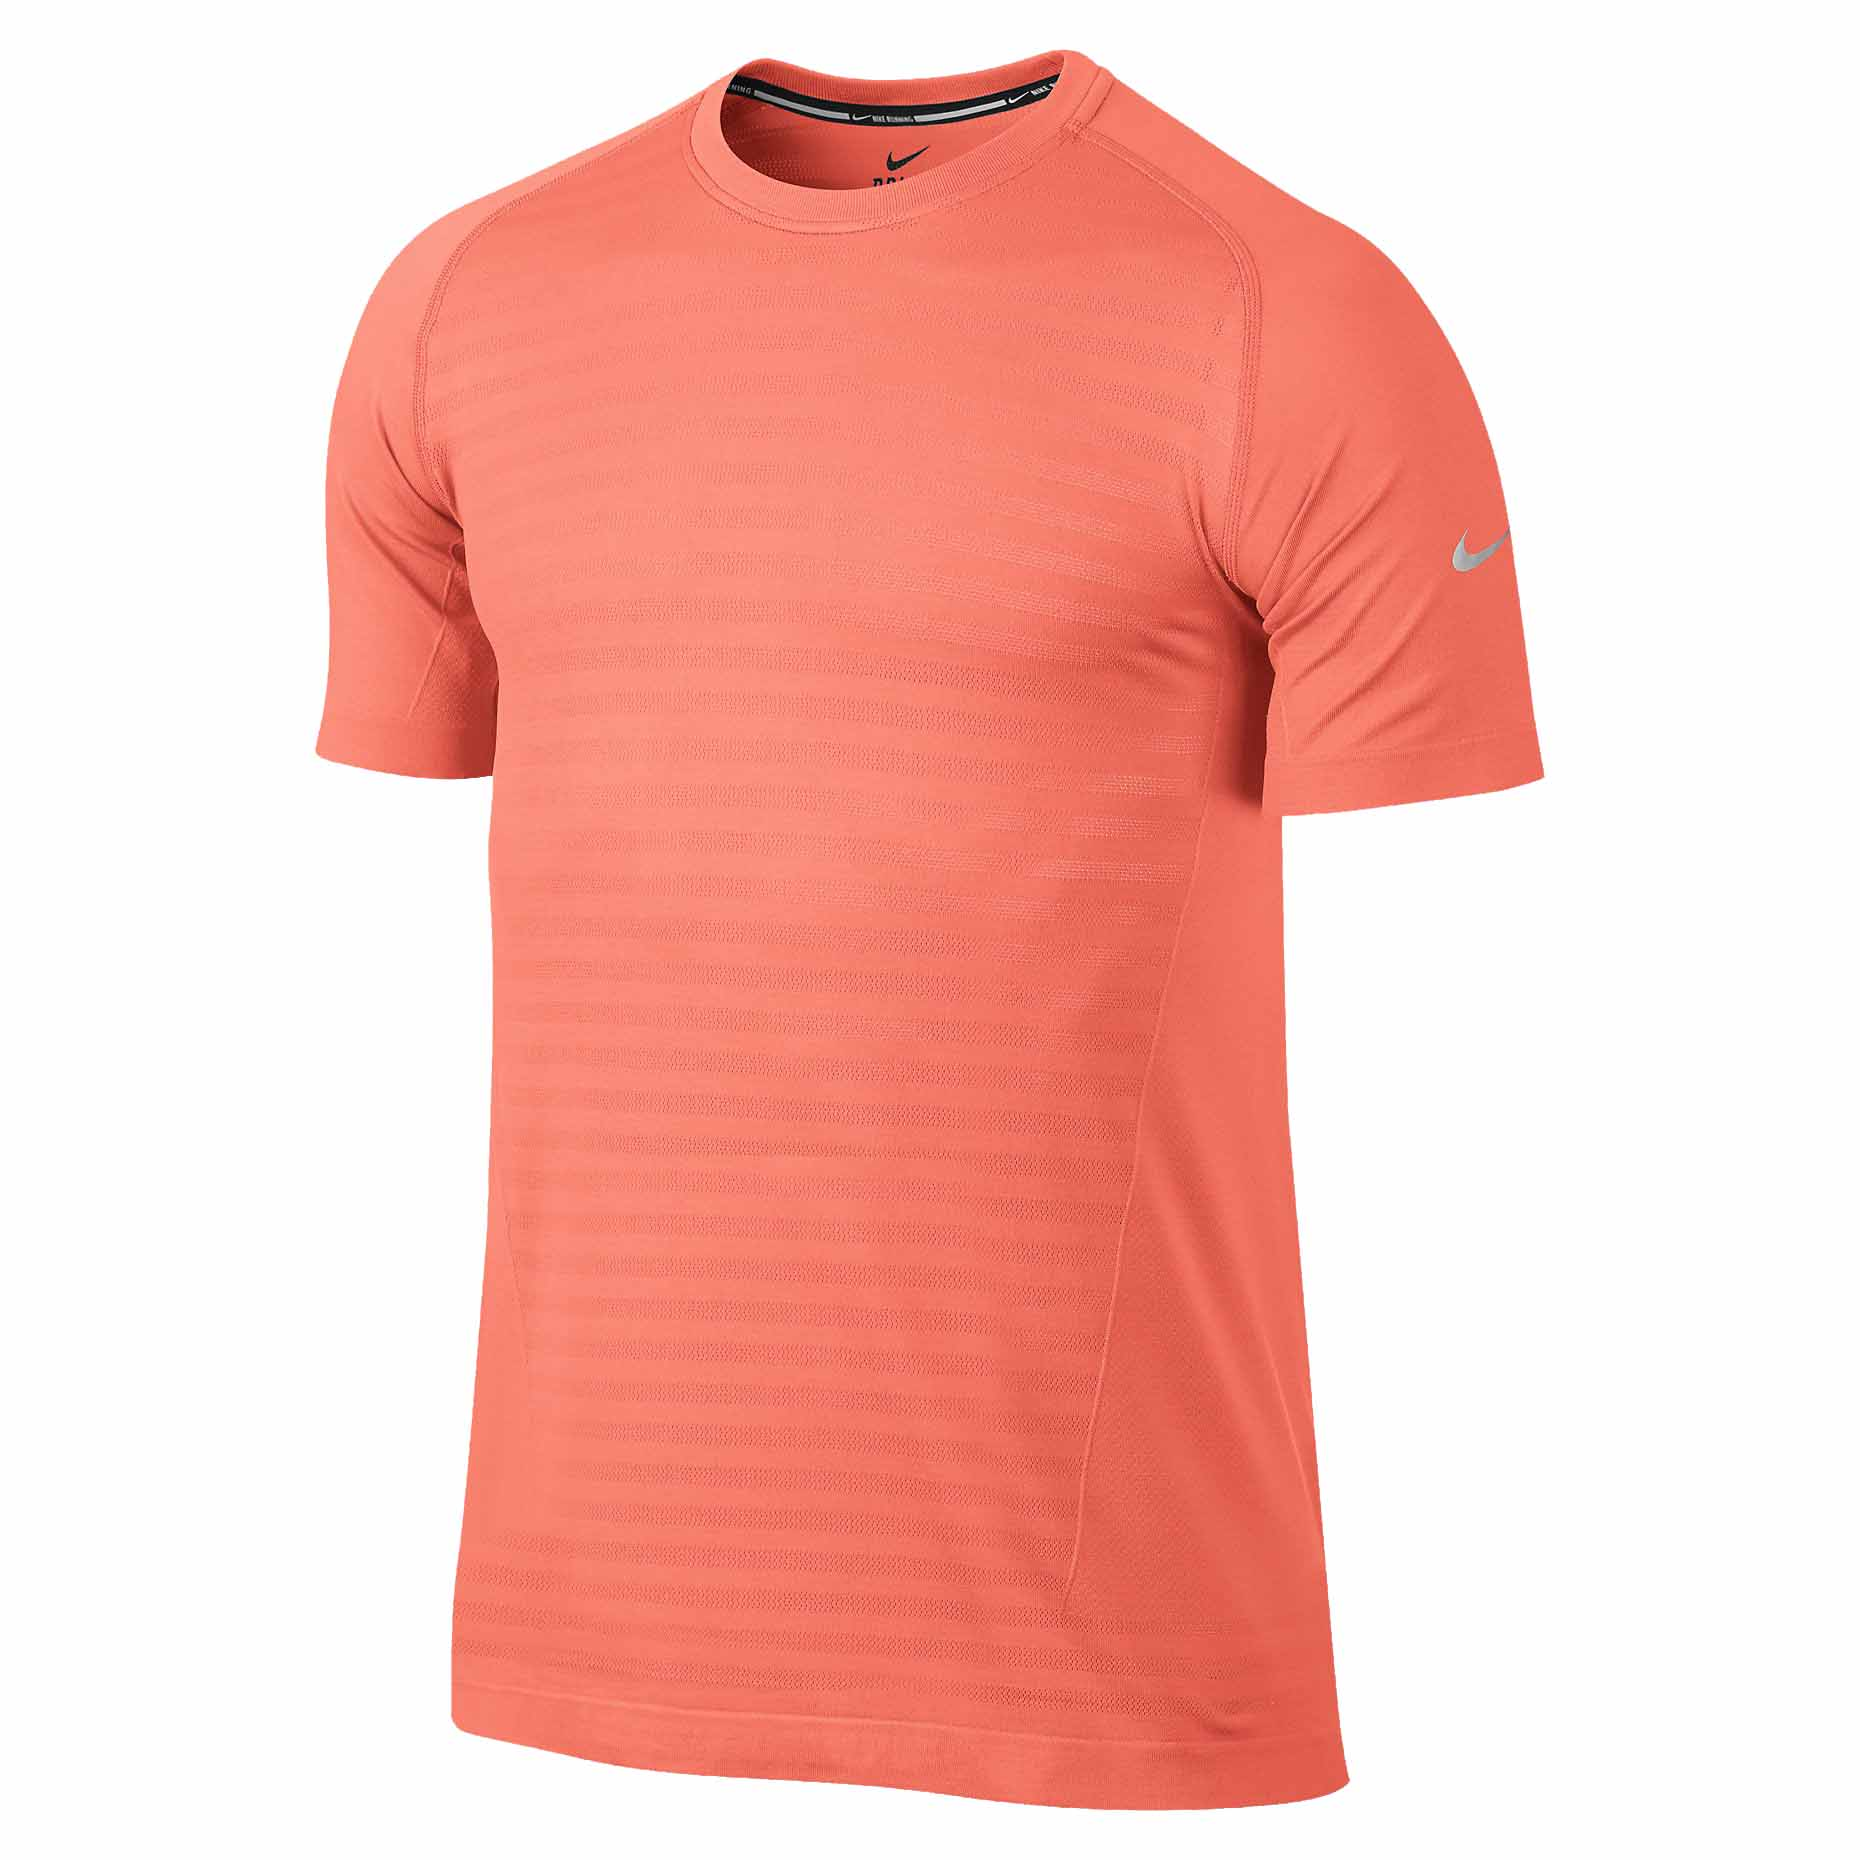 Nike men 39 s dri fit knit novelty crew running shirt bright for Running dri fit shirts